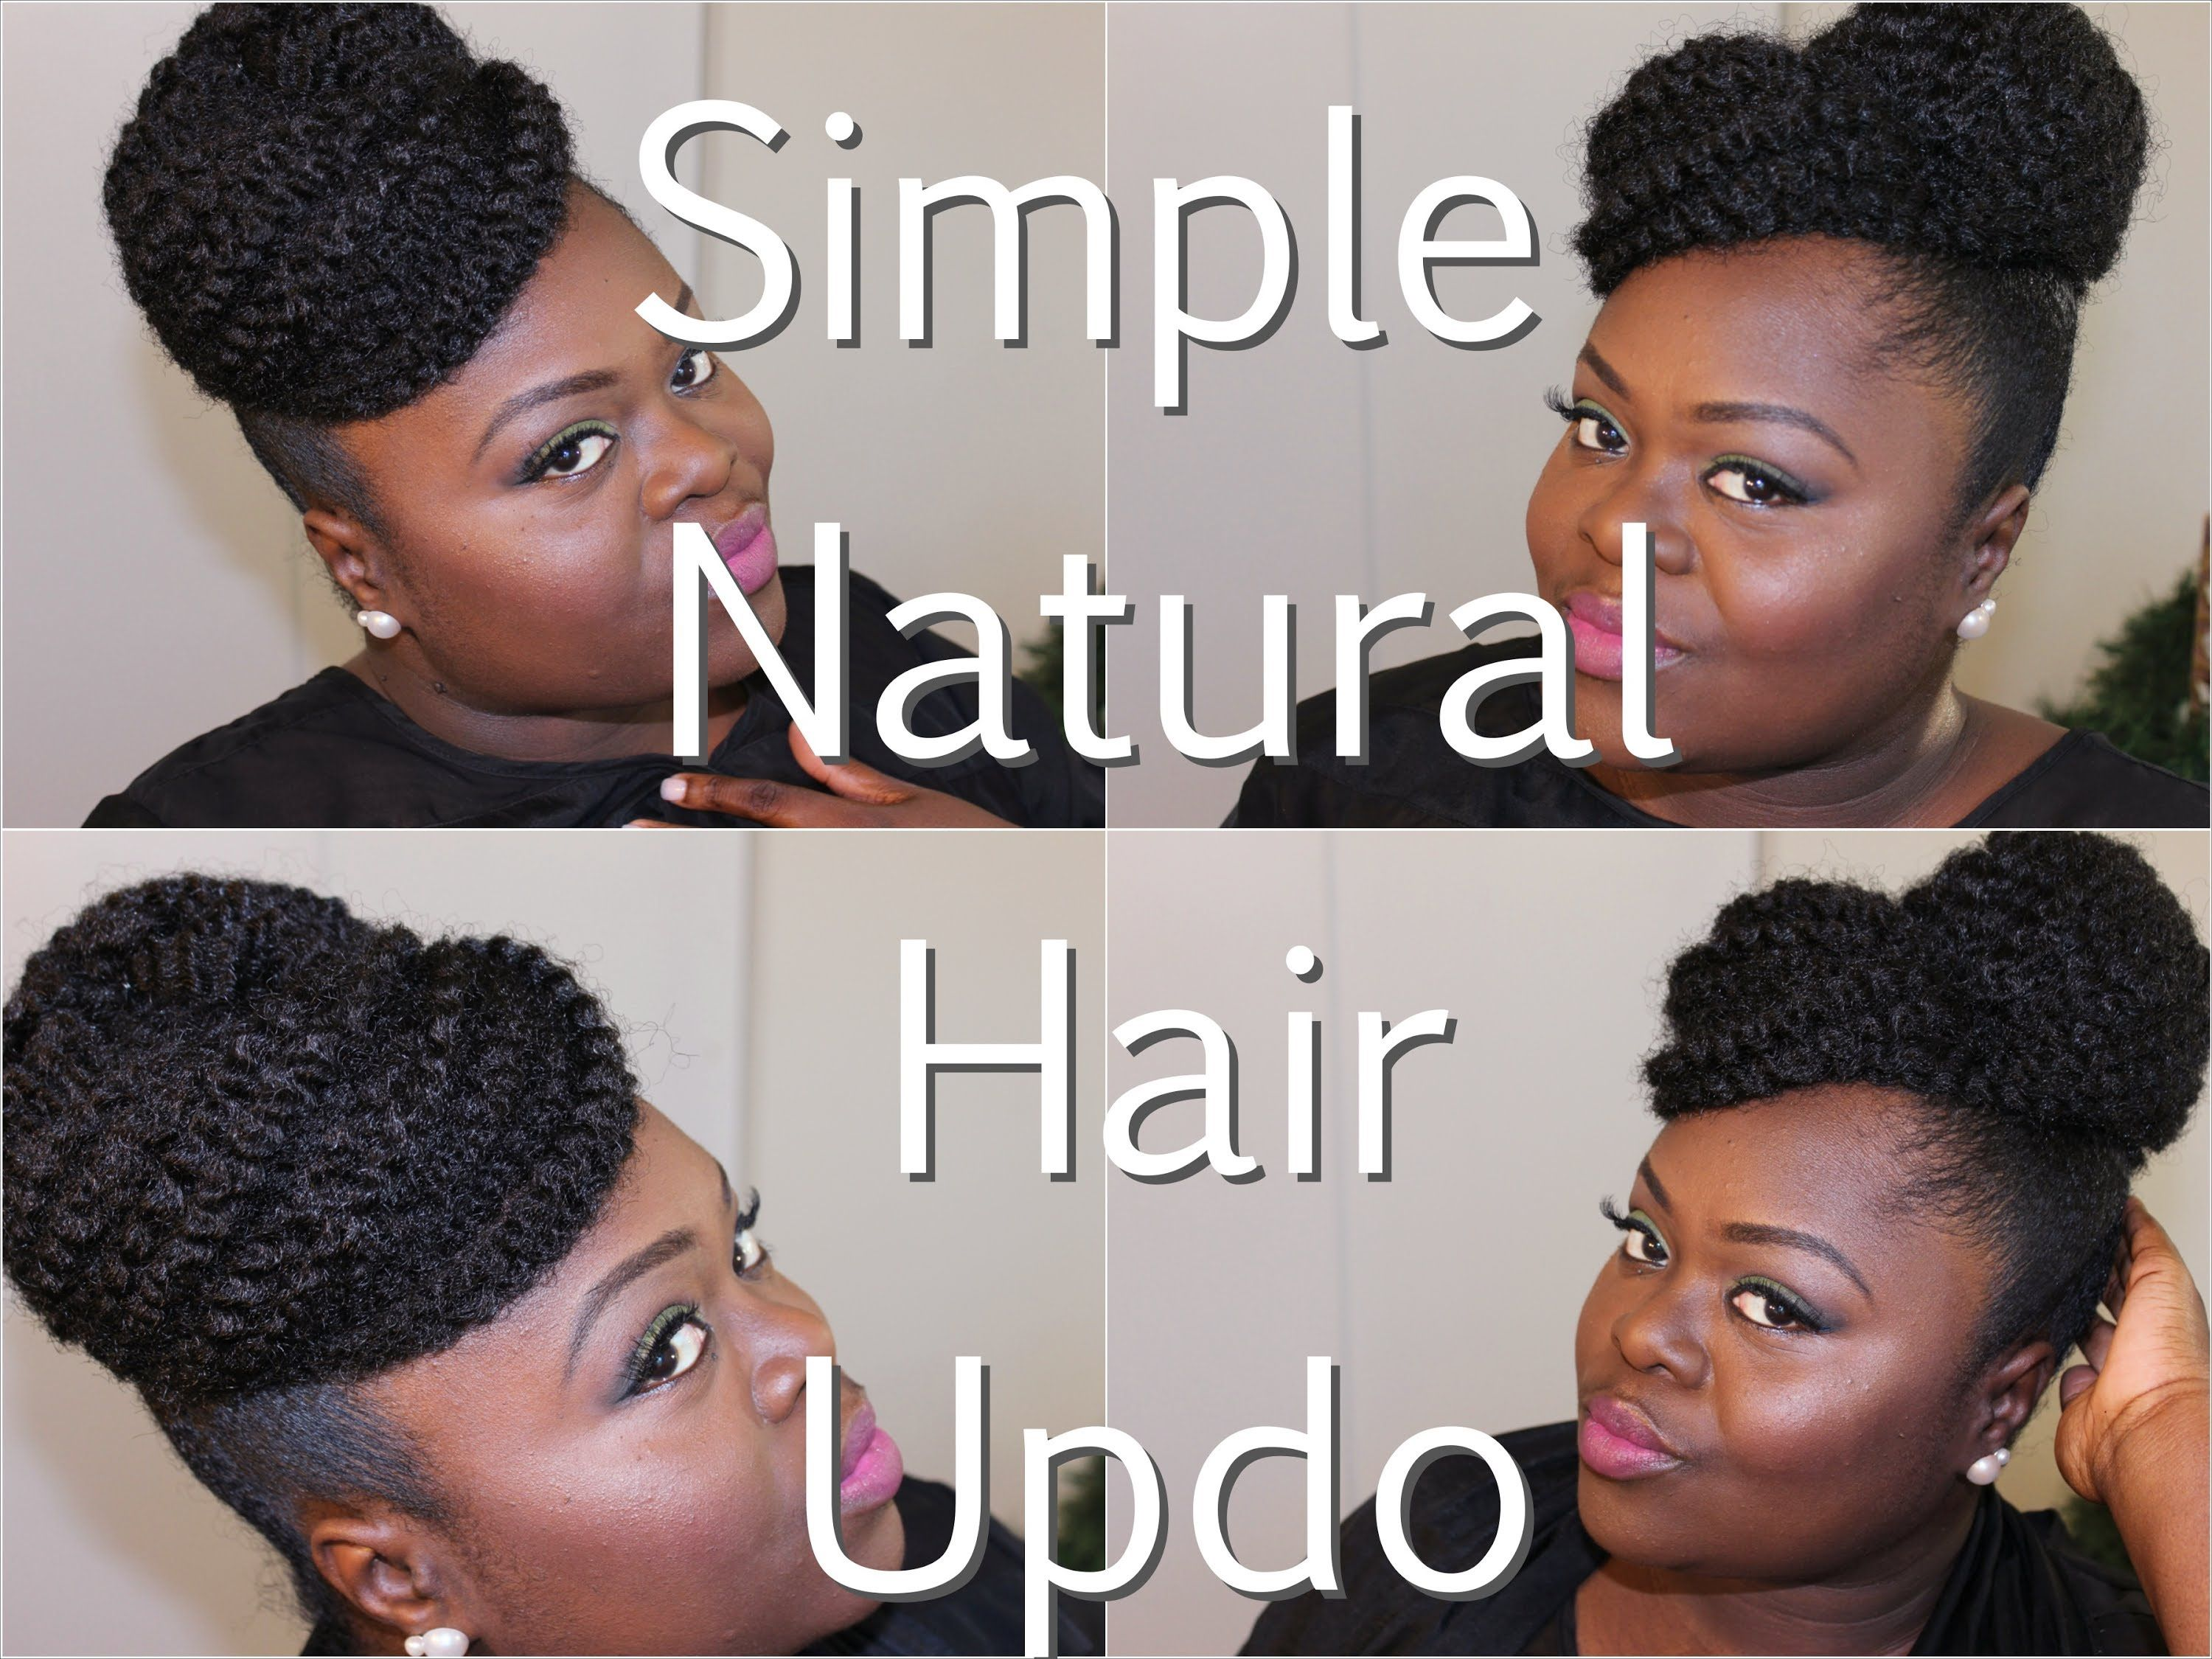 Natural Hair Braid Updo Styles: Easy Simple Natural Hair Updo With Marley Hair Extension